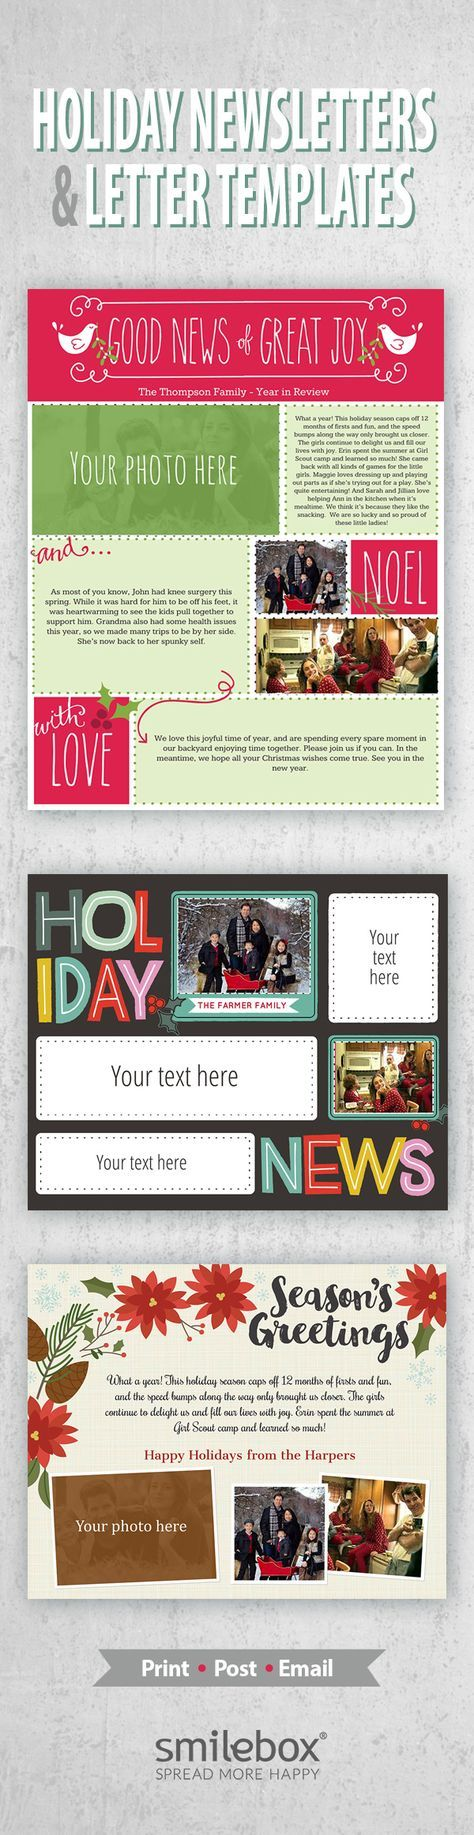 holiday newsletters